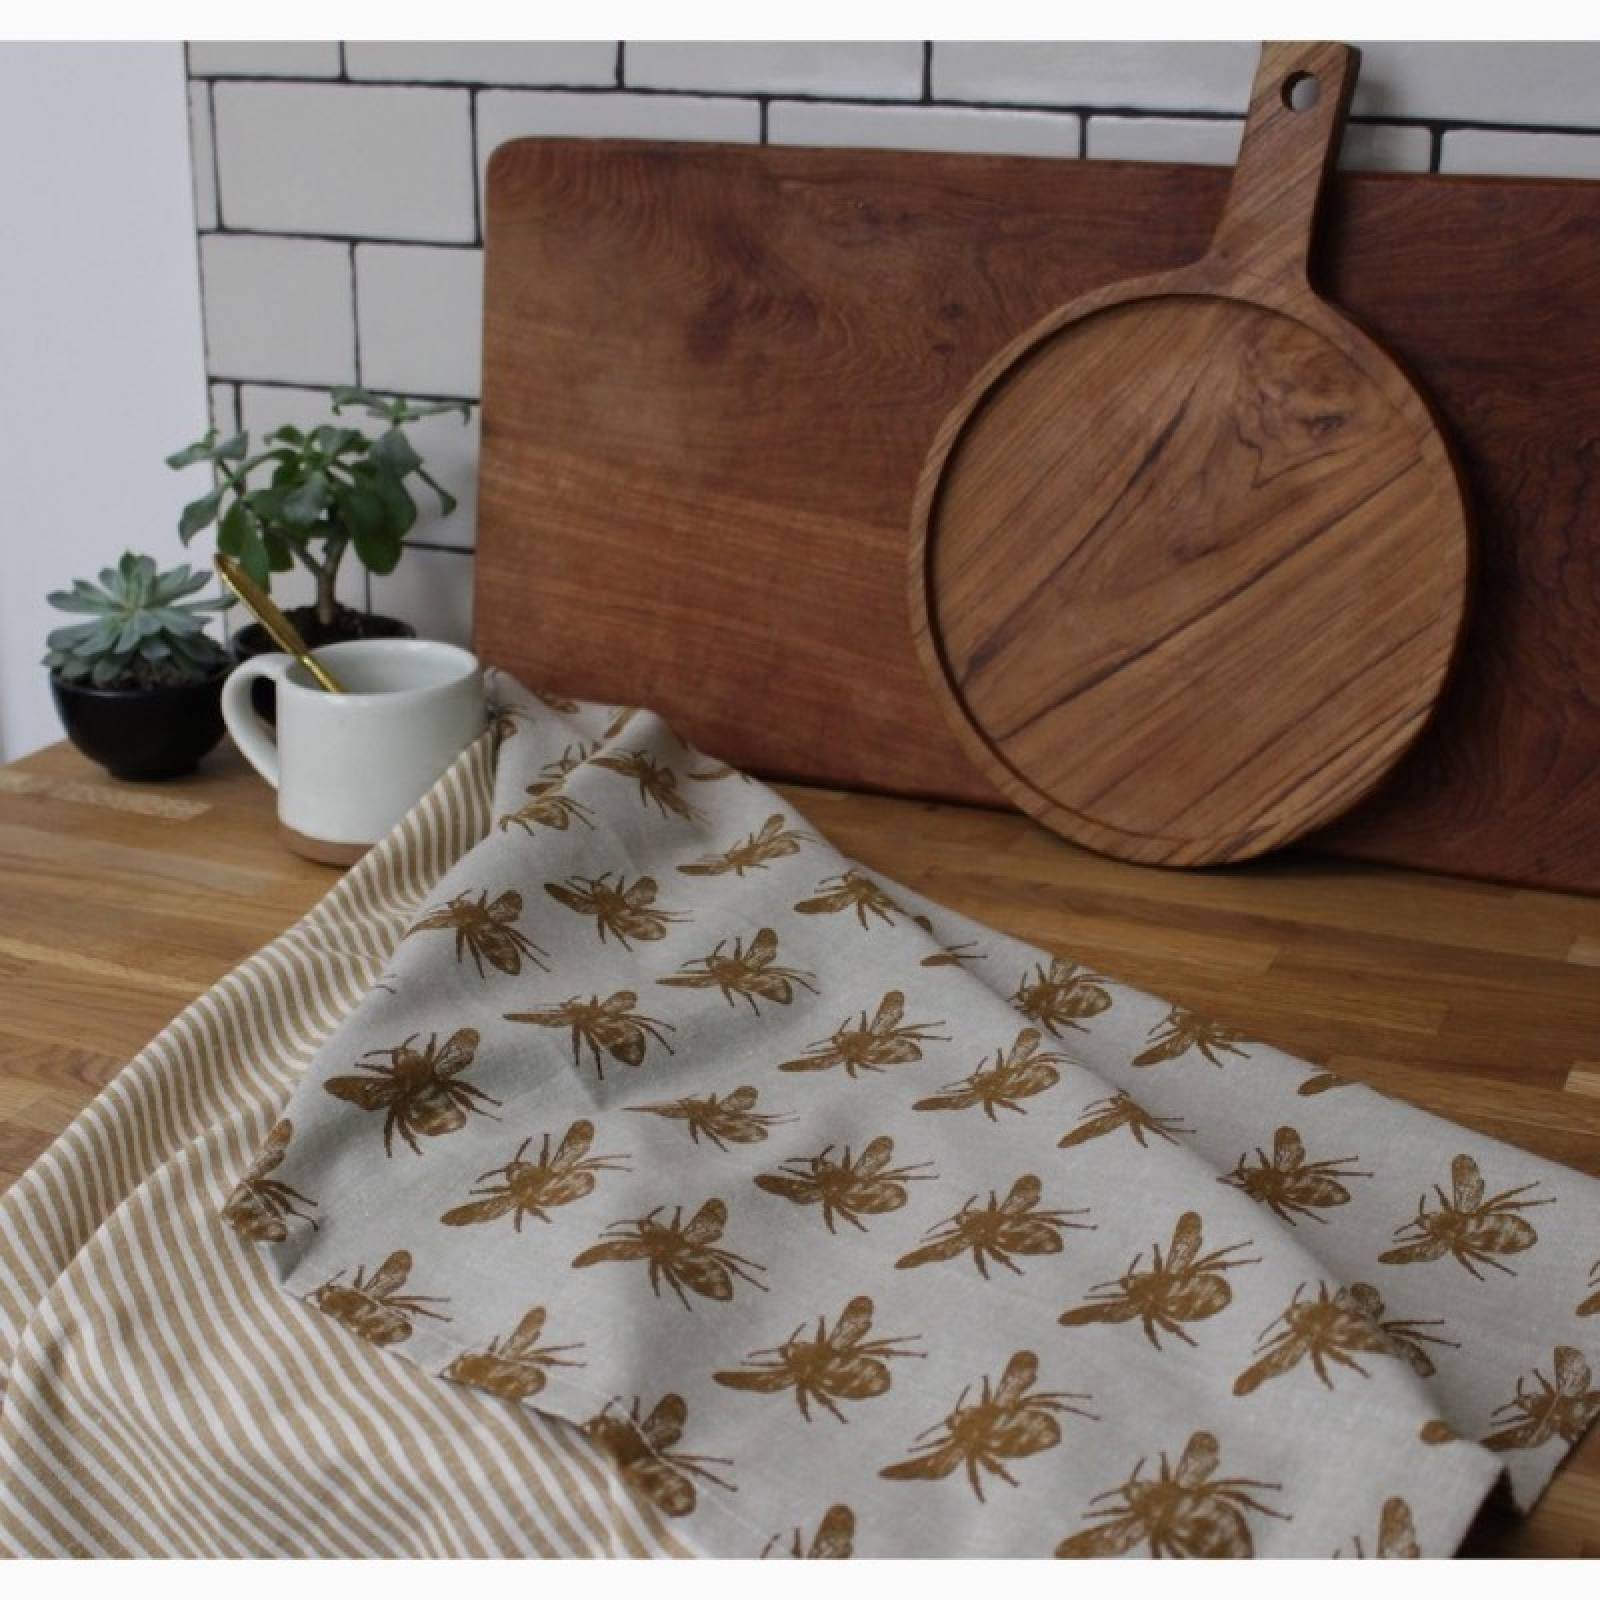 Set Of 2 Recycled Honey Bee Tea Towels In Mustard thumbnails